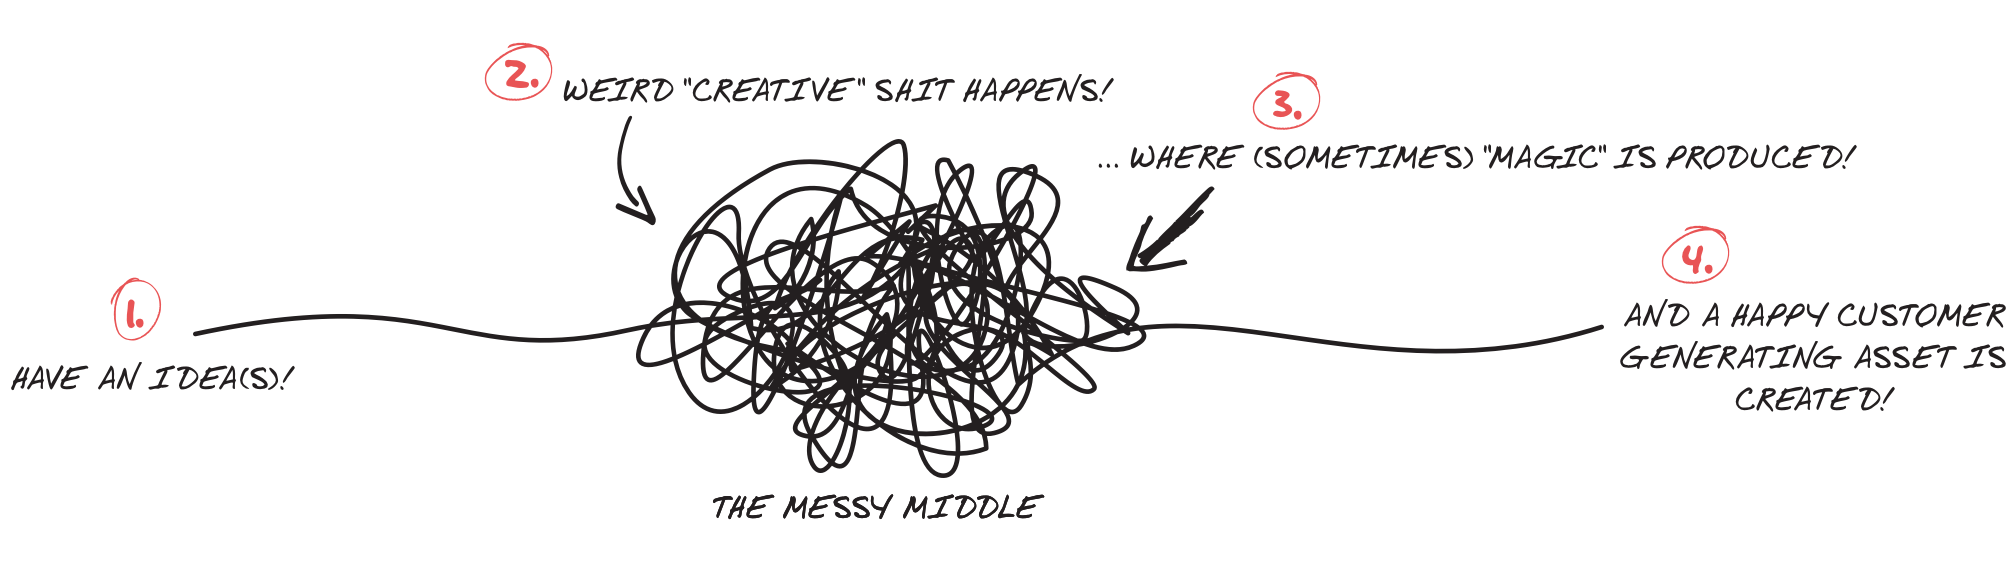 Ideas to Assets Masterclass: The Messy Middle